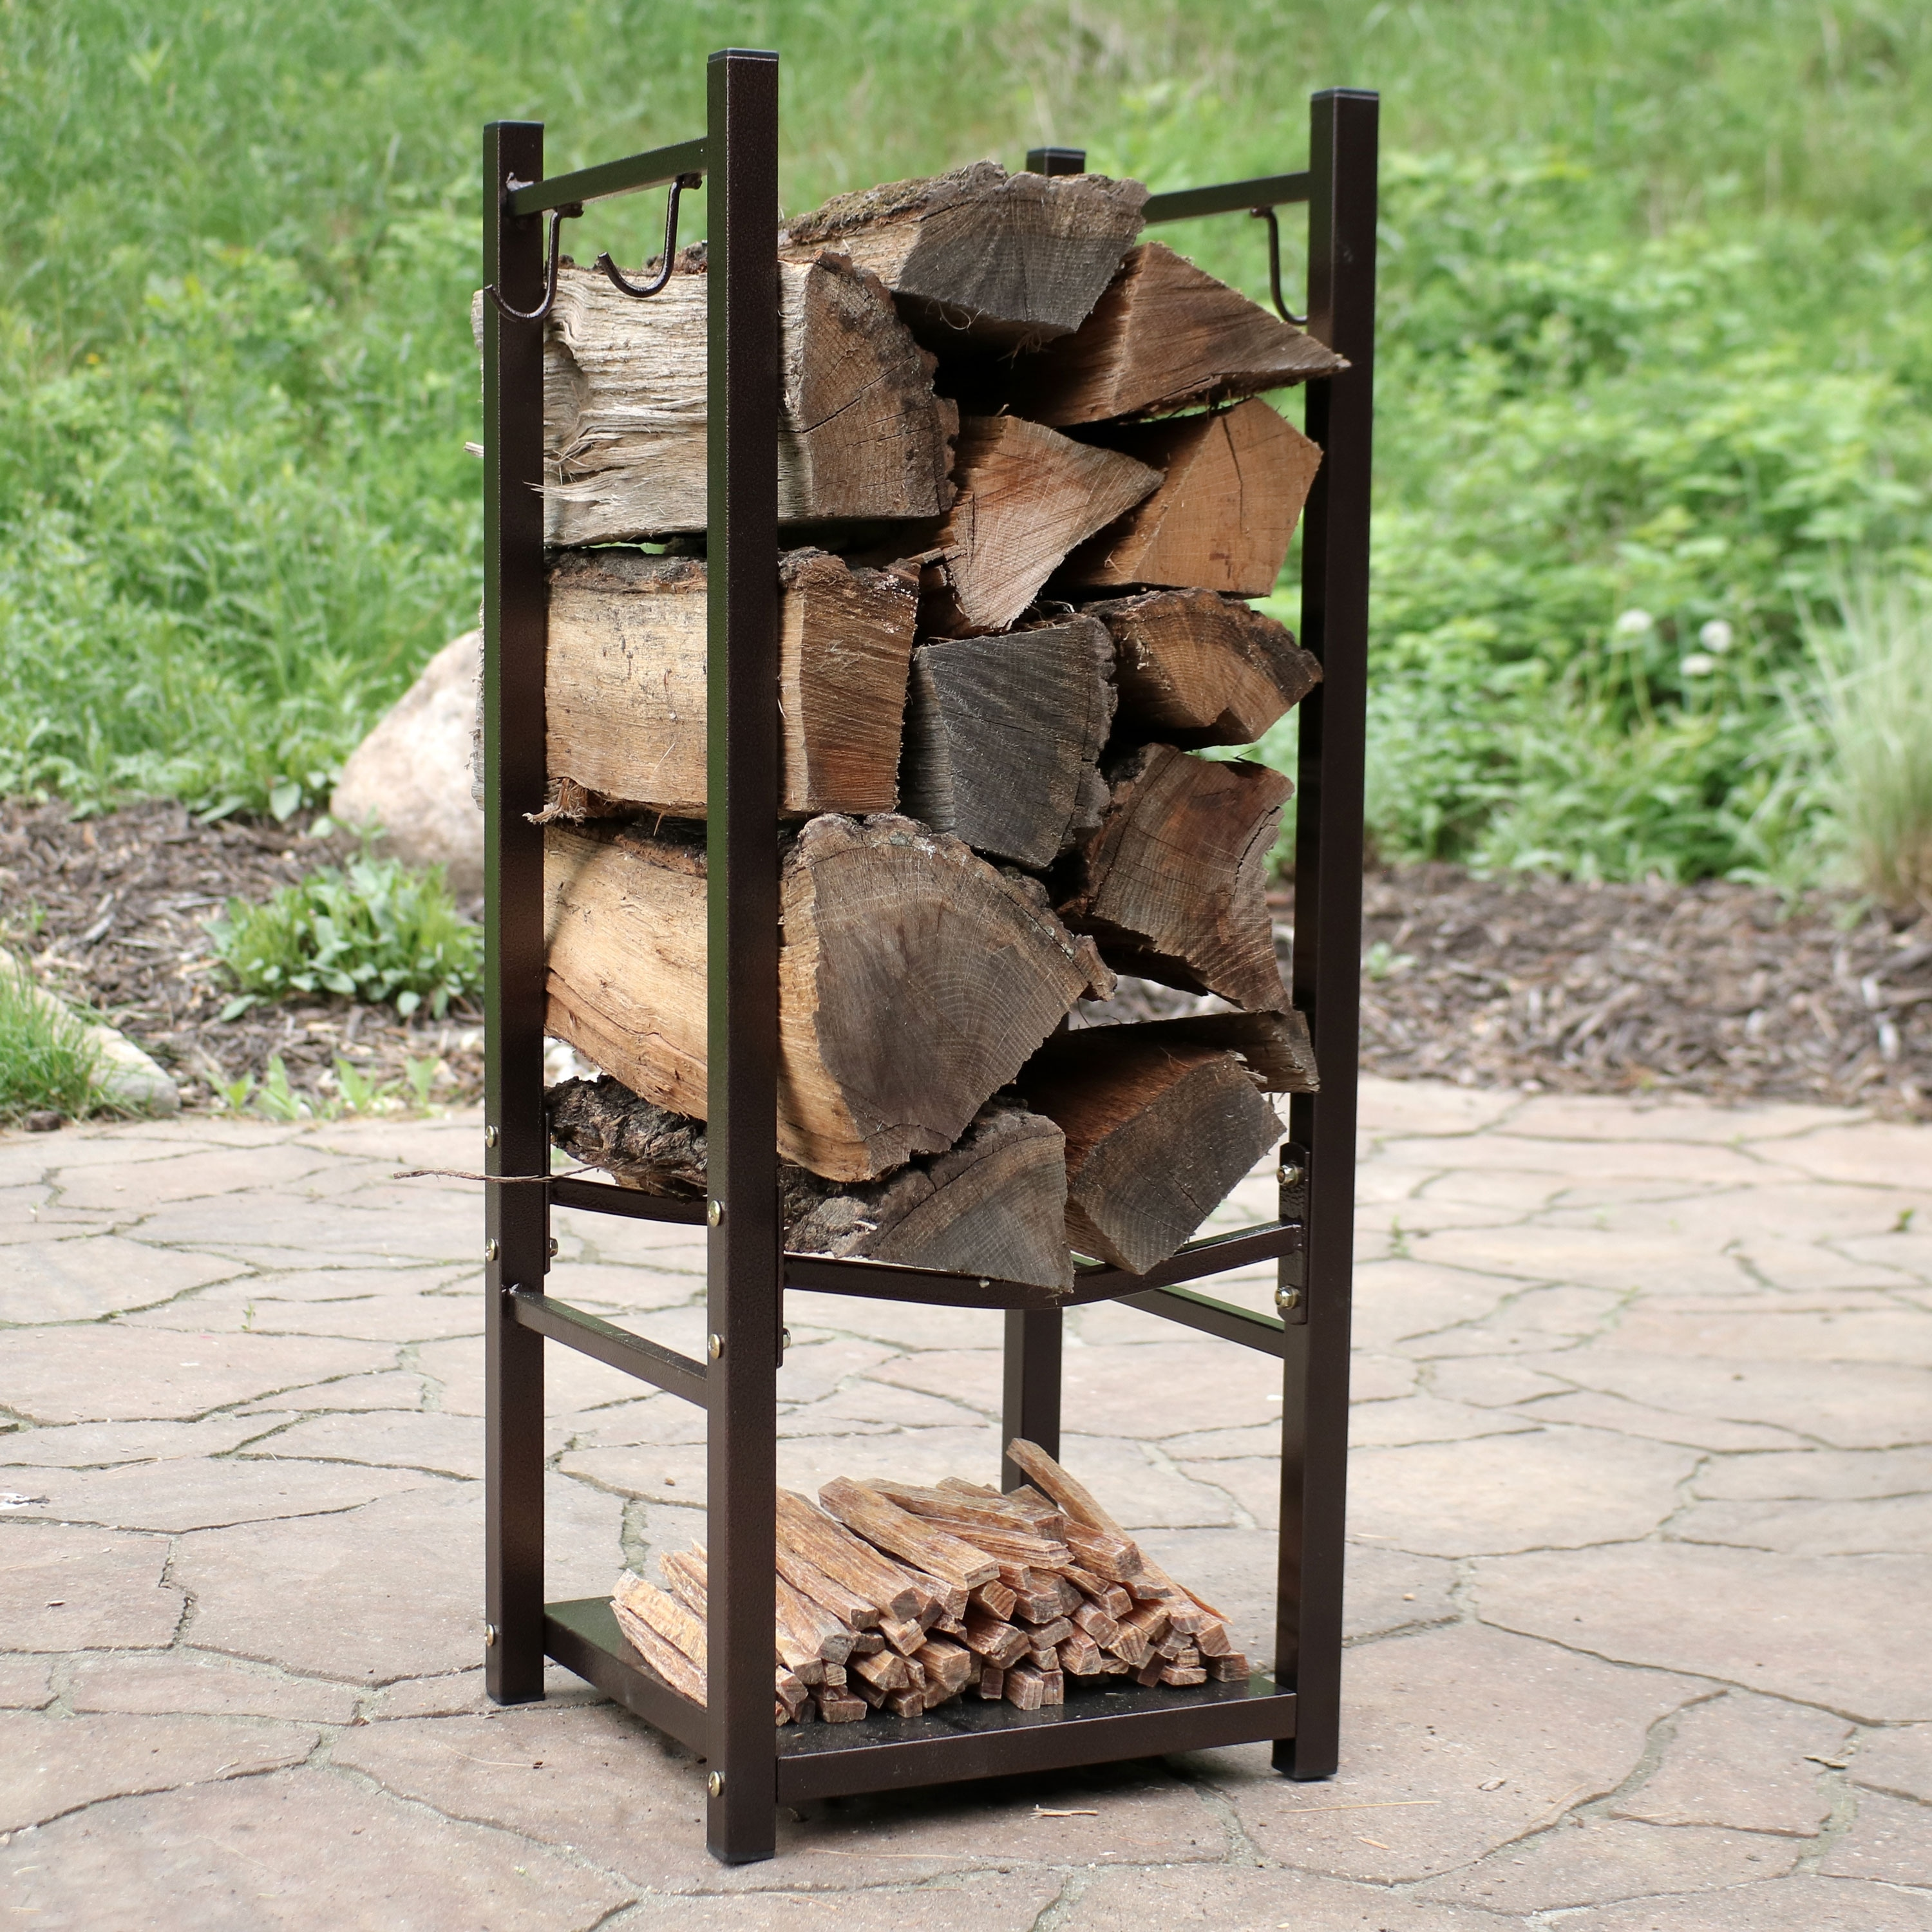 Outdoor Firewood Rack Sunnydaze Indoor Outdoor Firewood Fireside Log Rack With Tool Holders Bronze